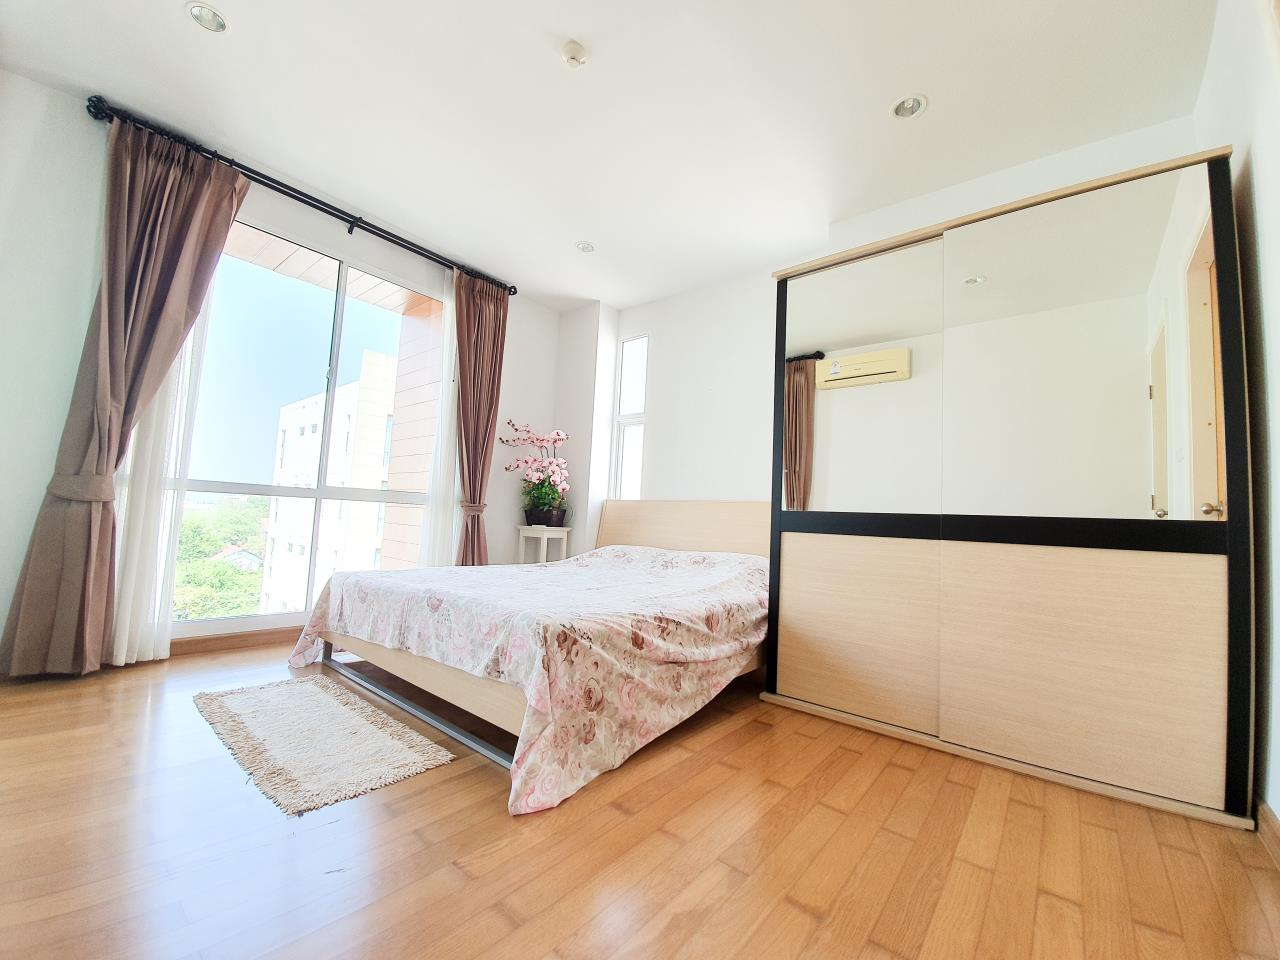 HOME - Real Estate Service Agency's The Breeze Hua Hin / 2 Beds (FOR RENT), เดอะ บรีซ หัวหิน / 2 ห้องนอน (ให้เช่า) T008 10